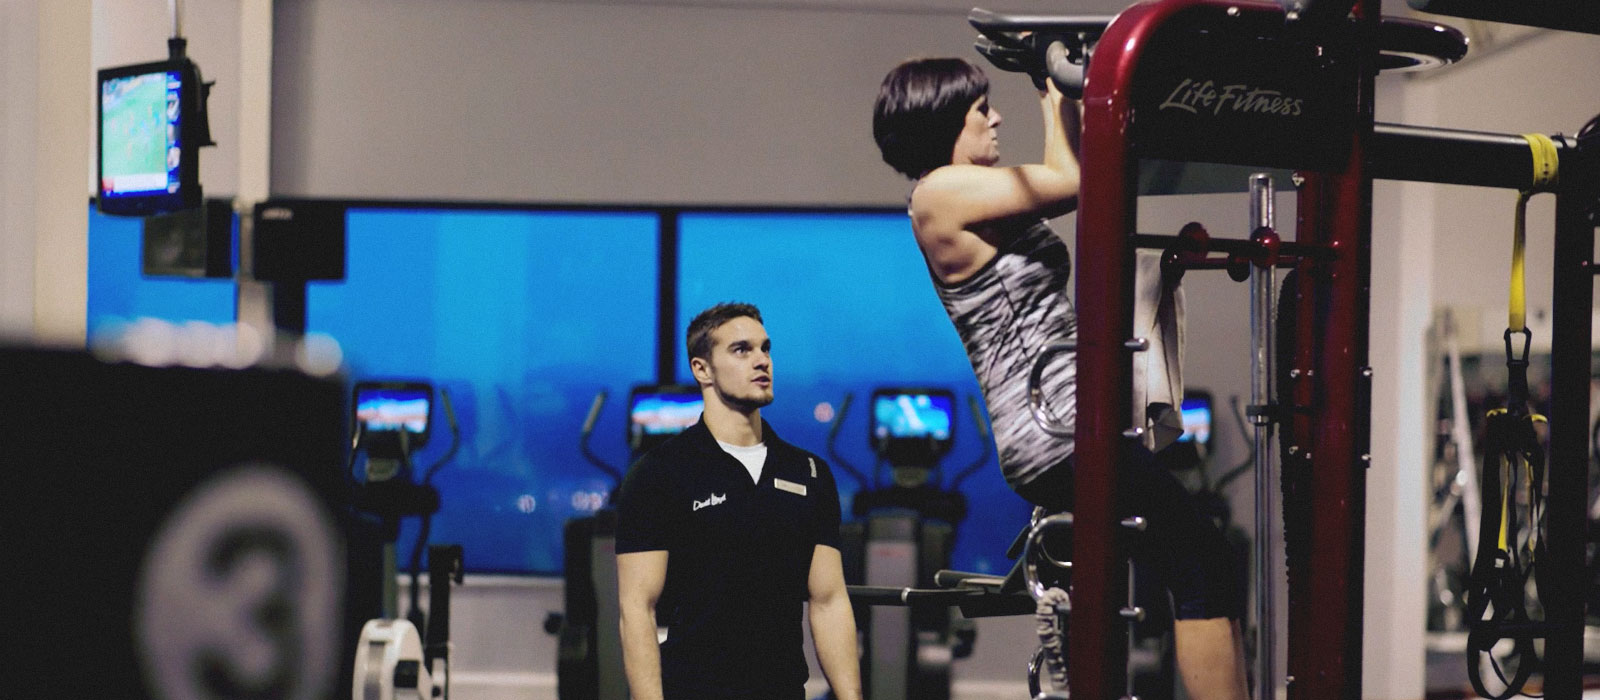 Watch how joining David Lloyd Clubs changed Adele Collins ...